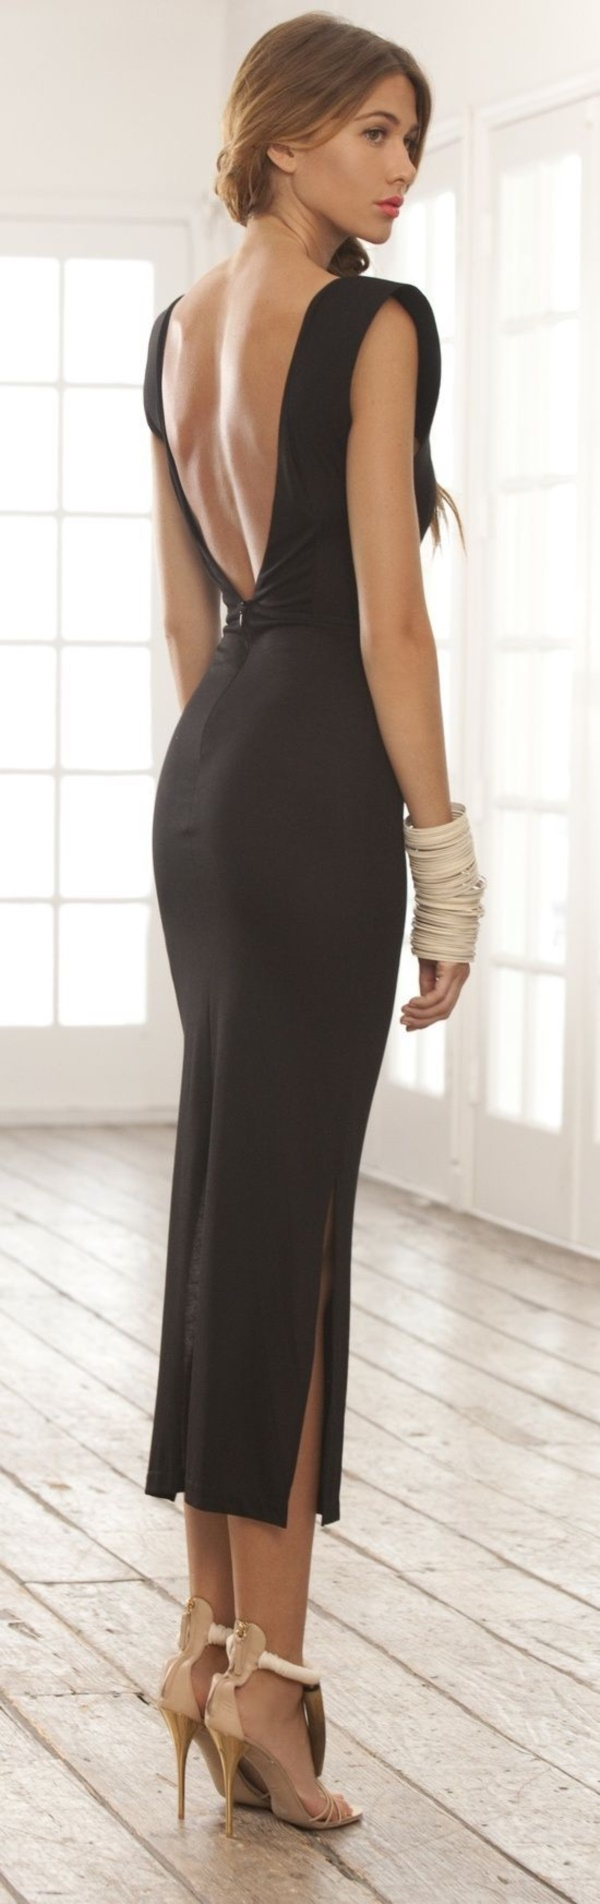 75 sexy backless dresses for evening parties. Black Bedroom Furniture Sets. Home Design Ideas